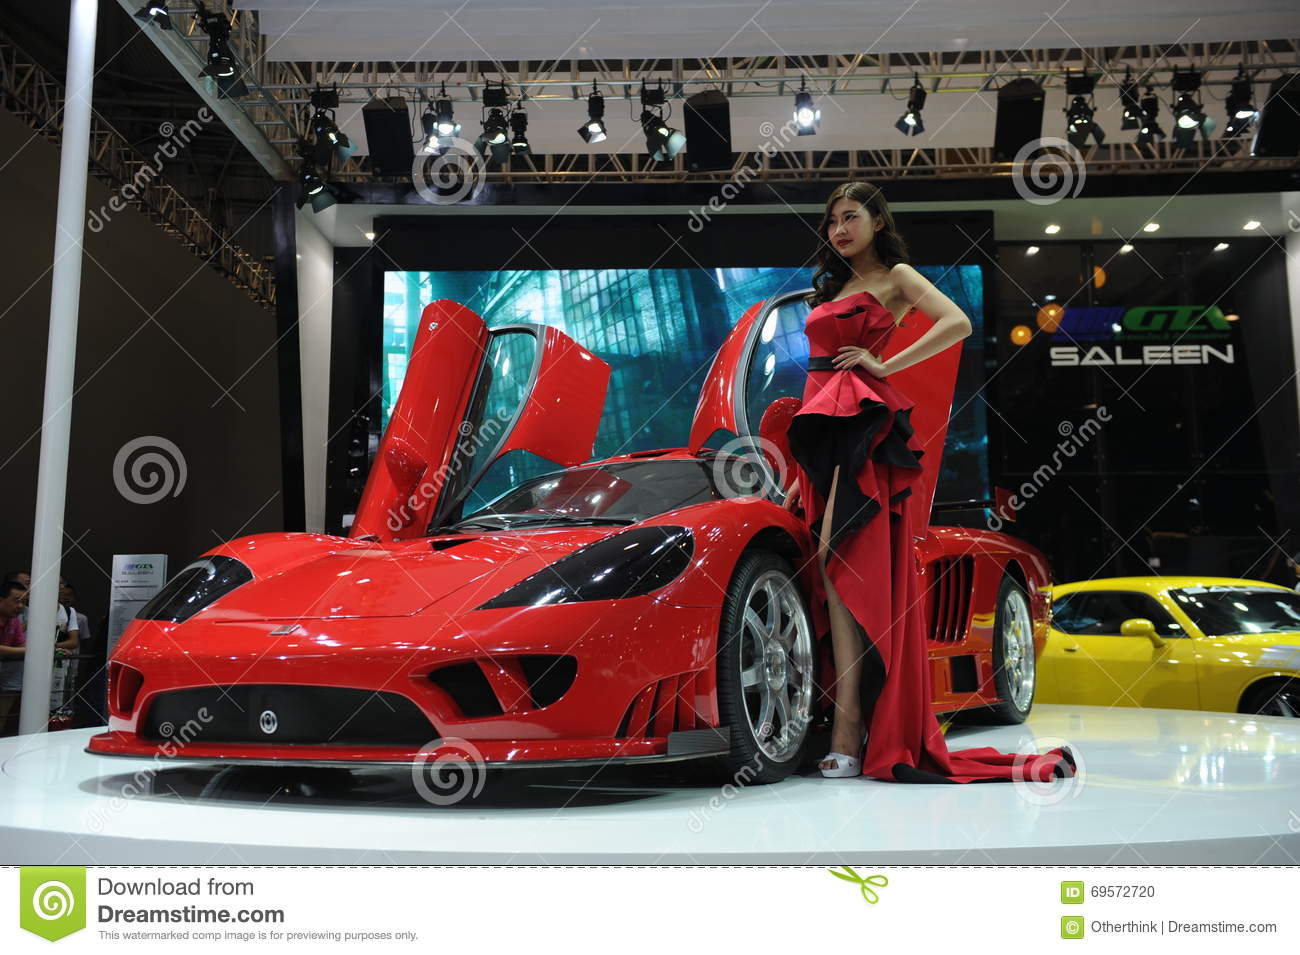 Saleen S7,Super Run,red,Beautiful Car Models